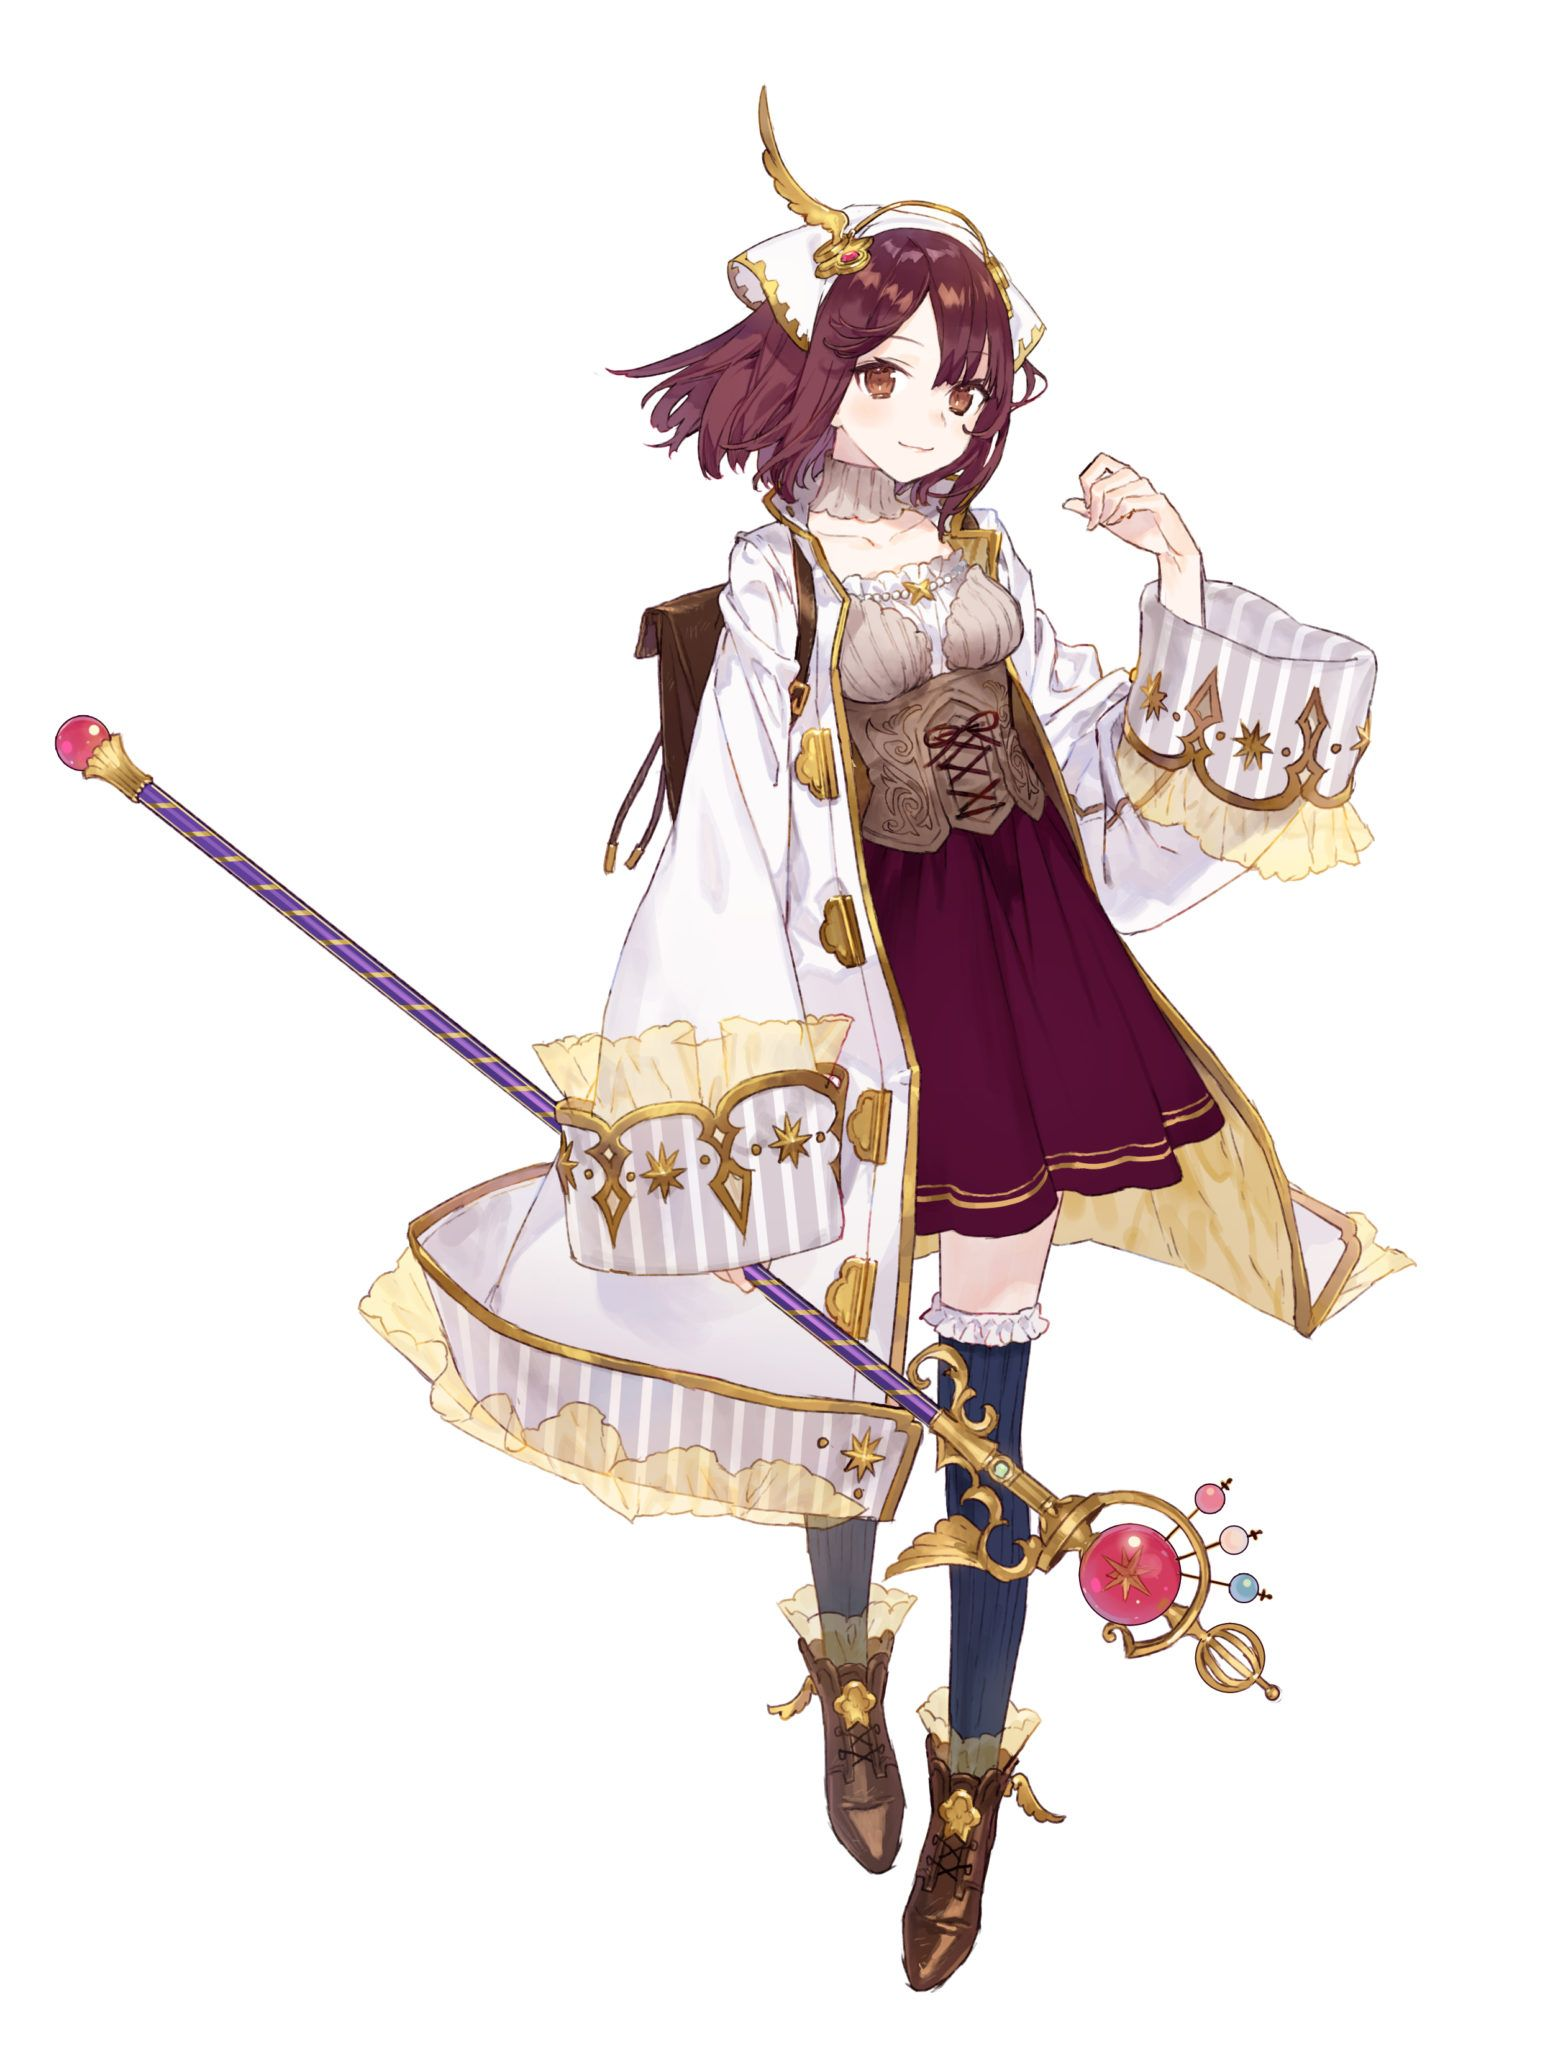 Atelier-Lydie-and-Suelle-The-Alchemists-and-the-Mysterious-Paintings_2017_11-14-17_017